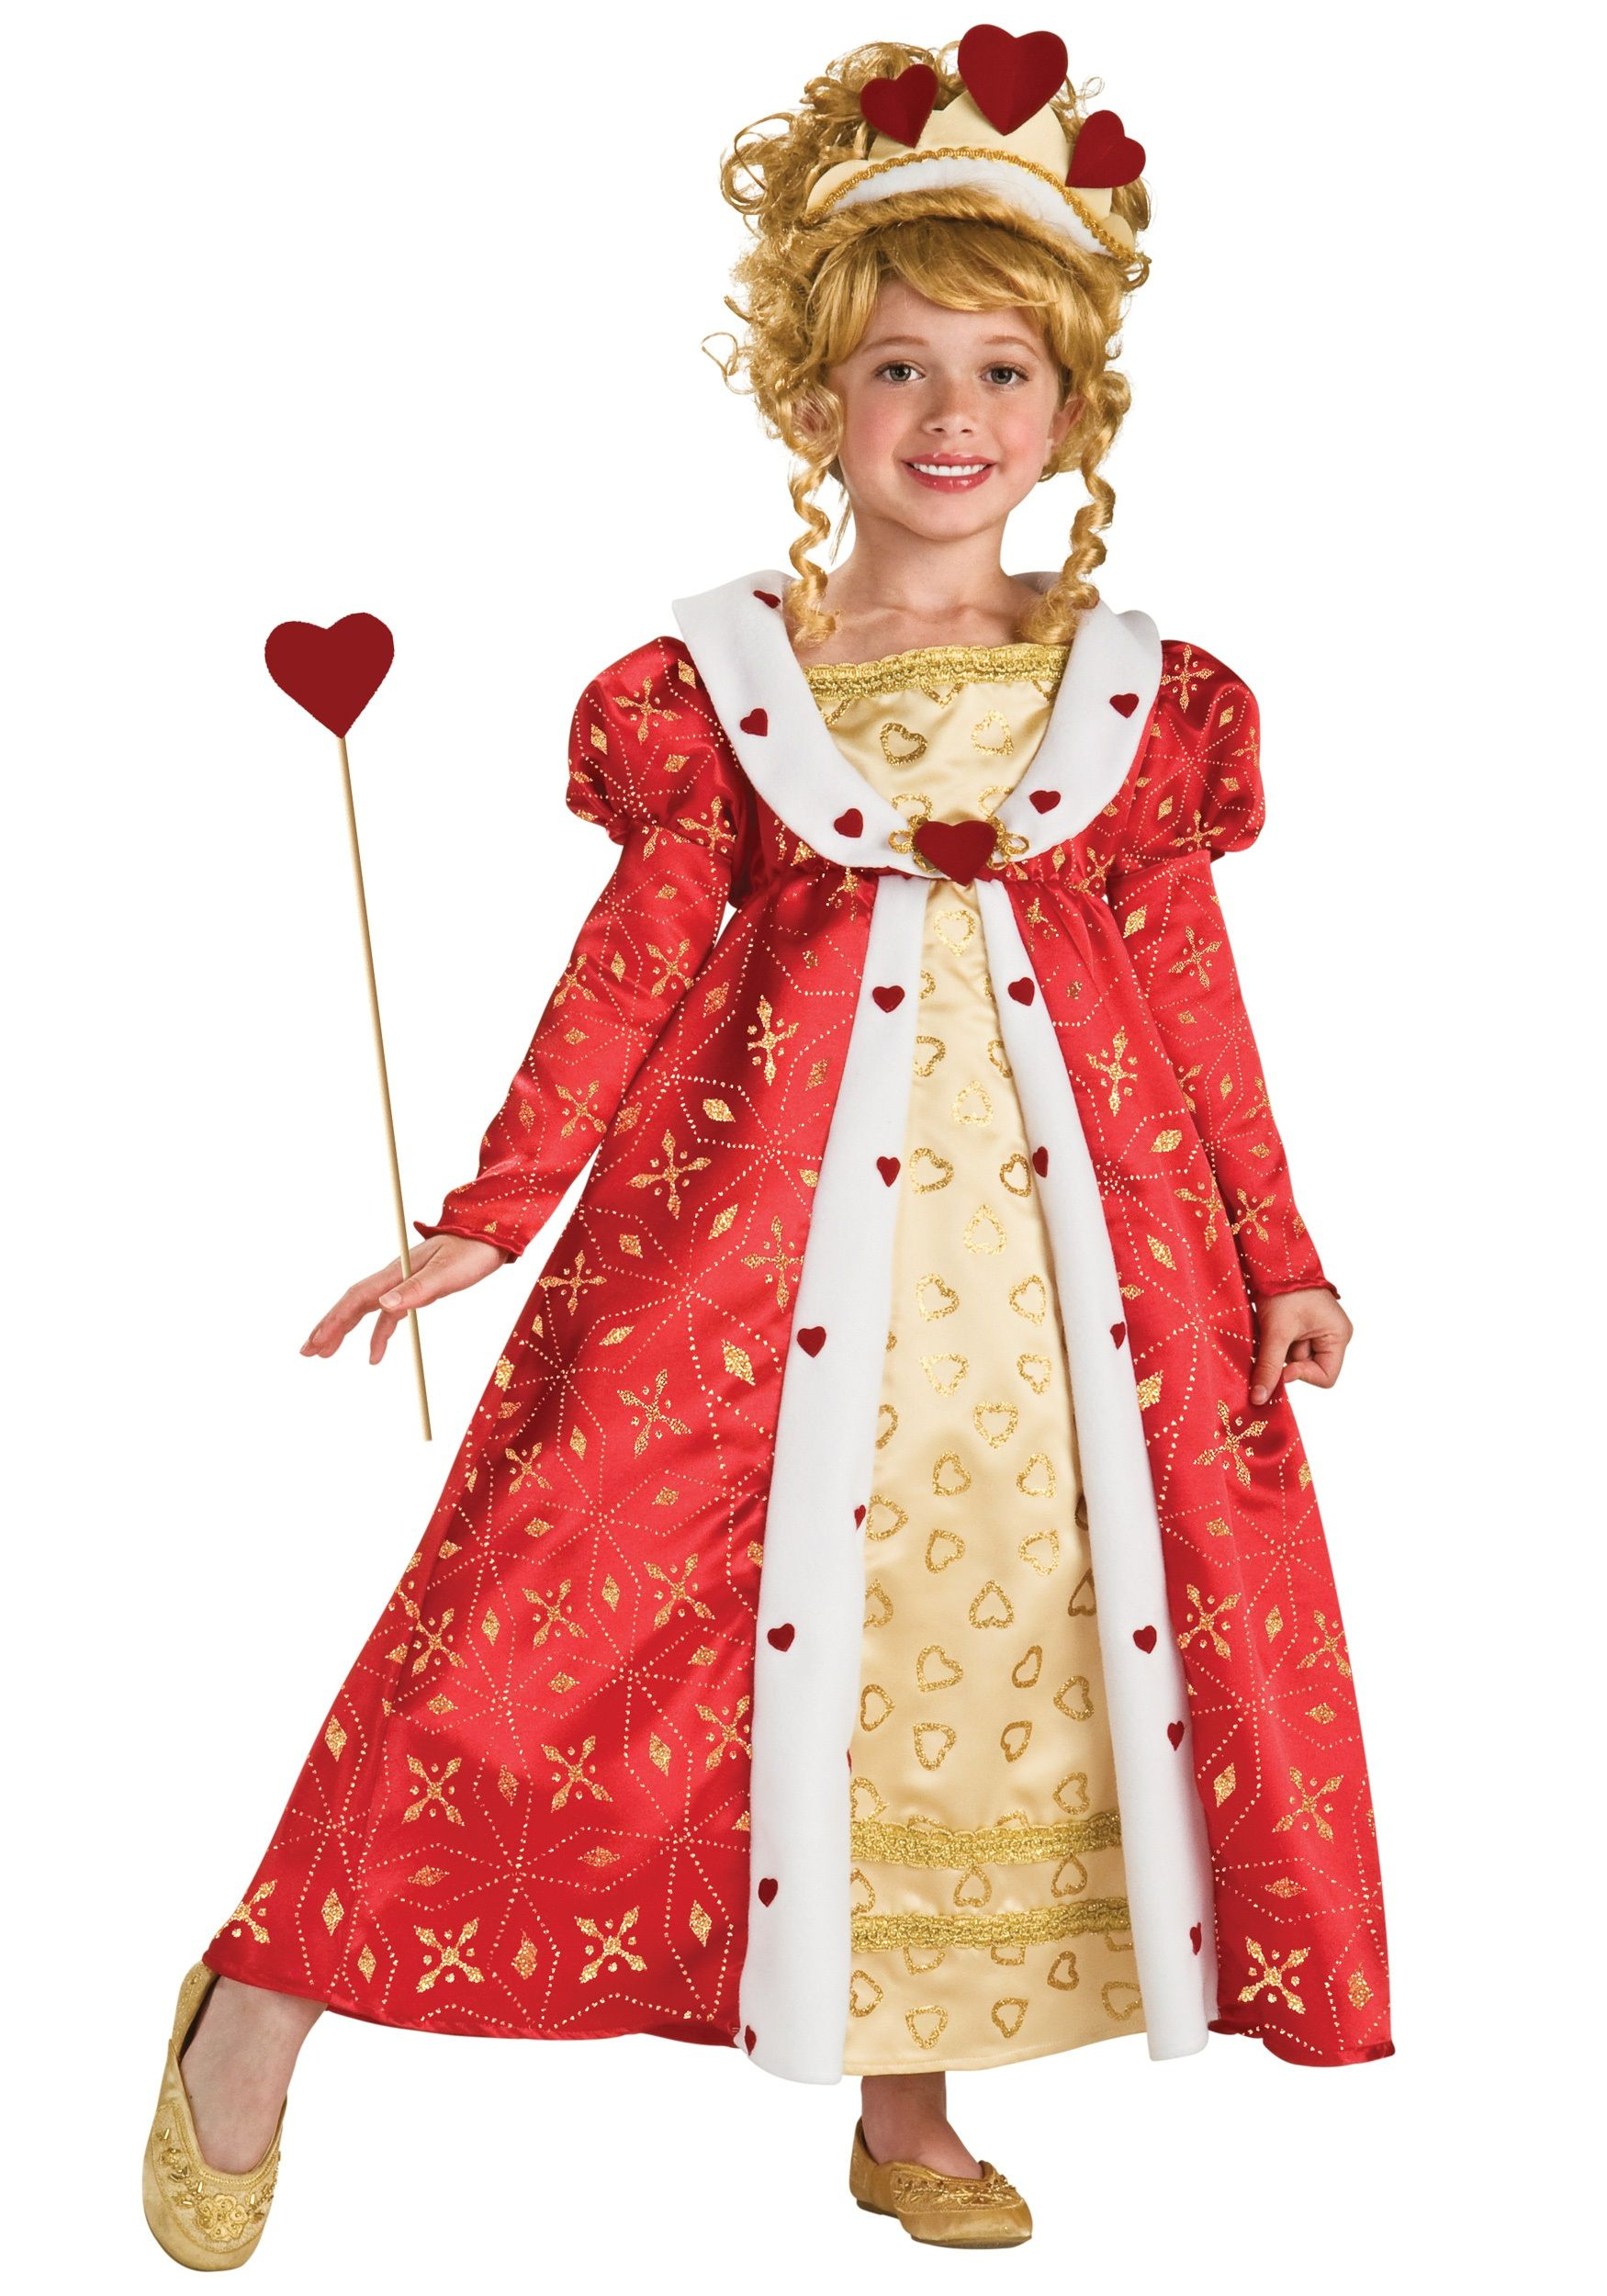 Red Heart Princess Child Costume- Child Queen of Hearts Costumes  sc 1 st  Pinterest & Red Heart Princess Child Costume- Child Queen of Hearts Costumes ...